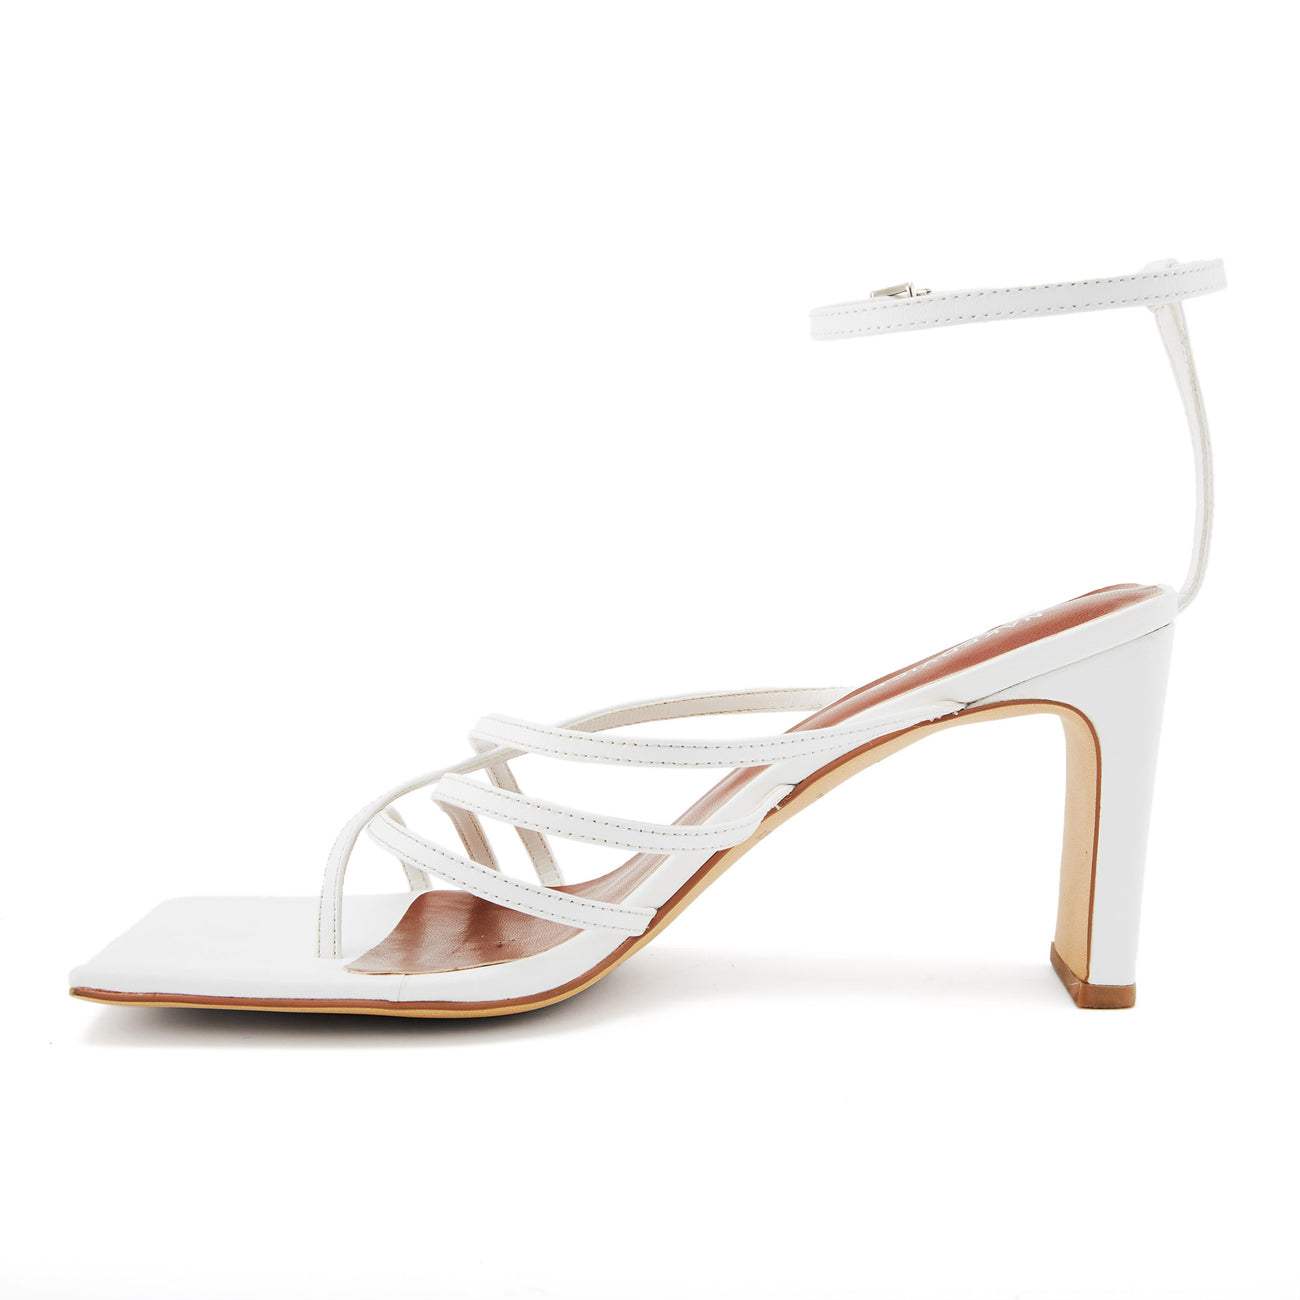 THE AYLA WHITE HEEL